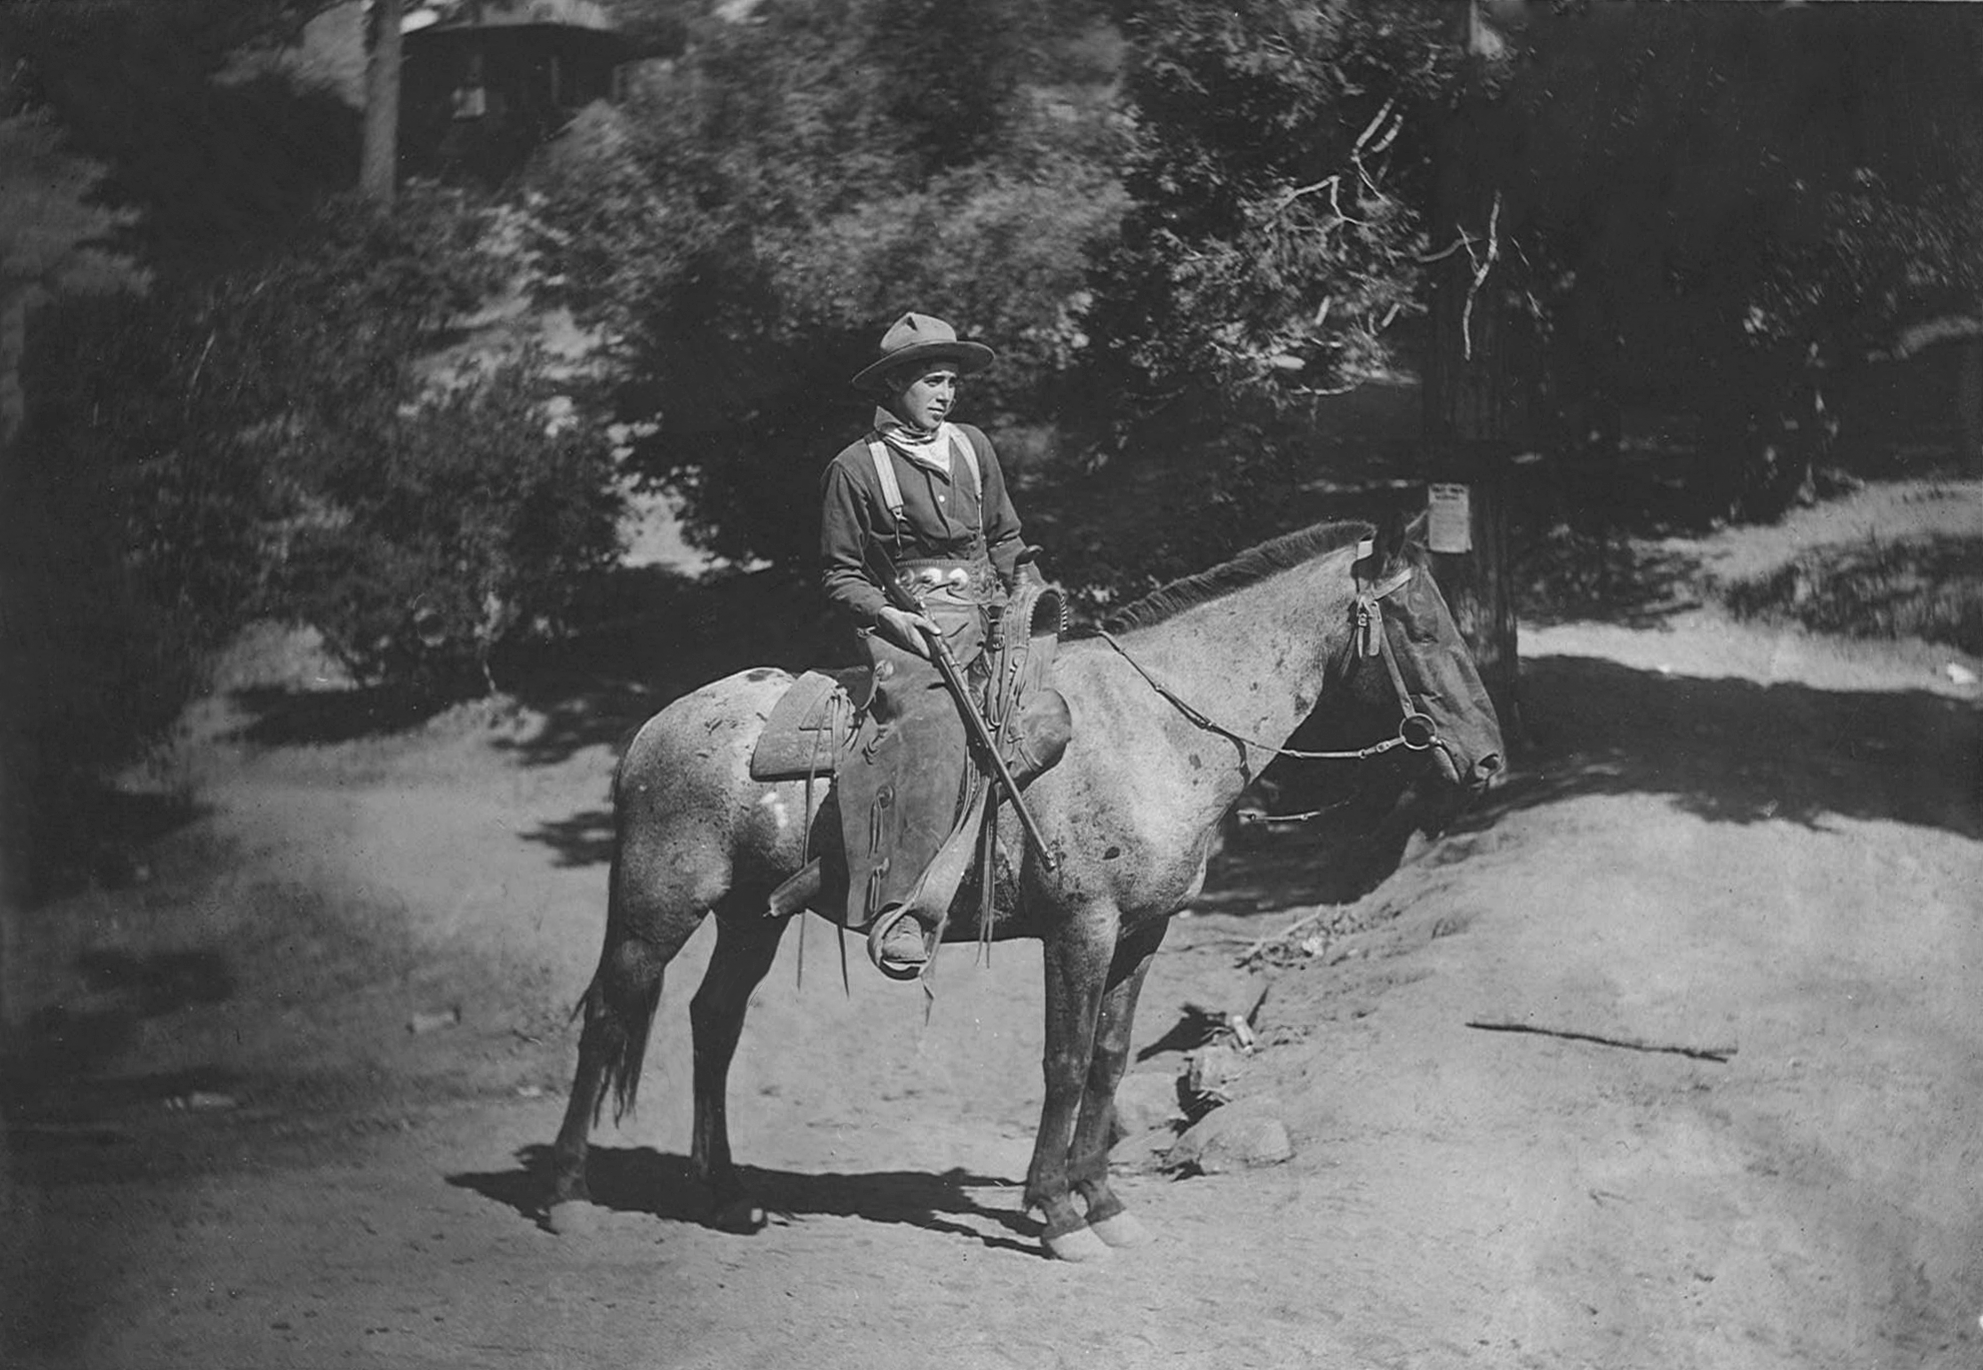 Milt-and-pack-horse-on-trail-1910.png